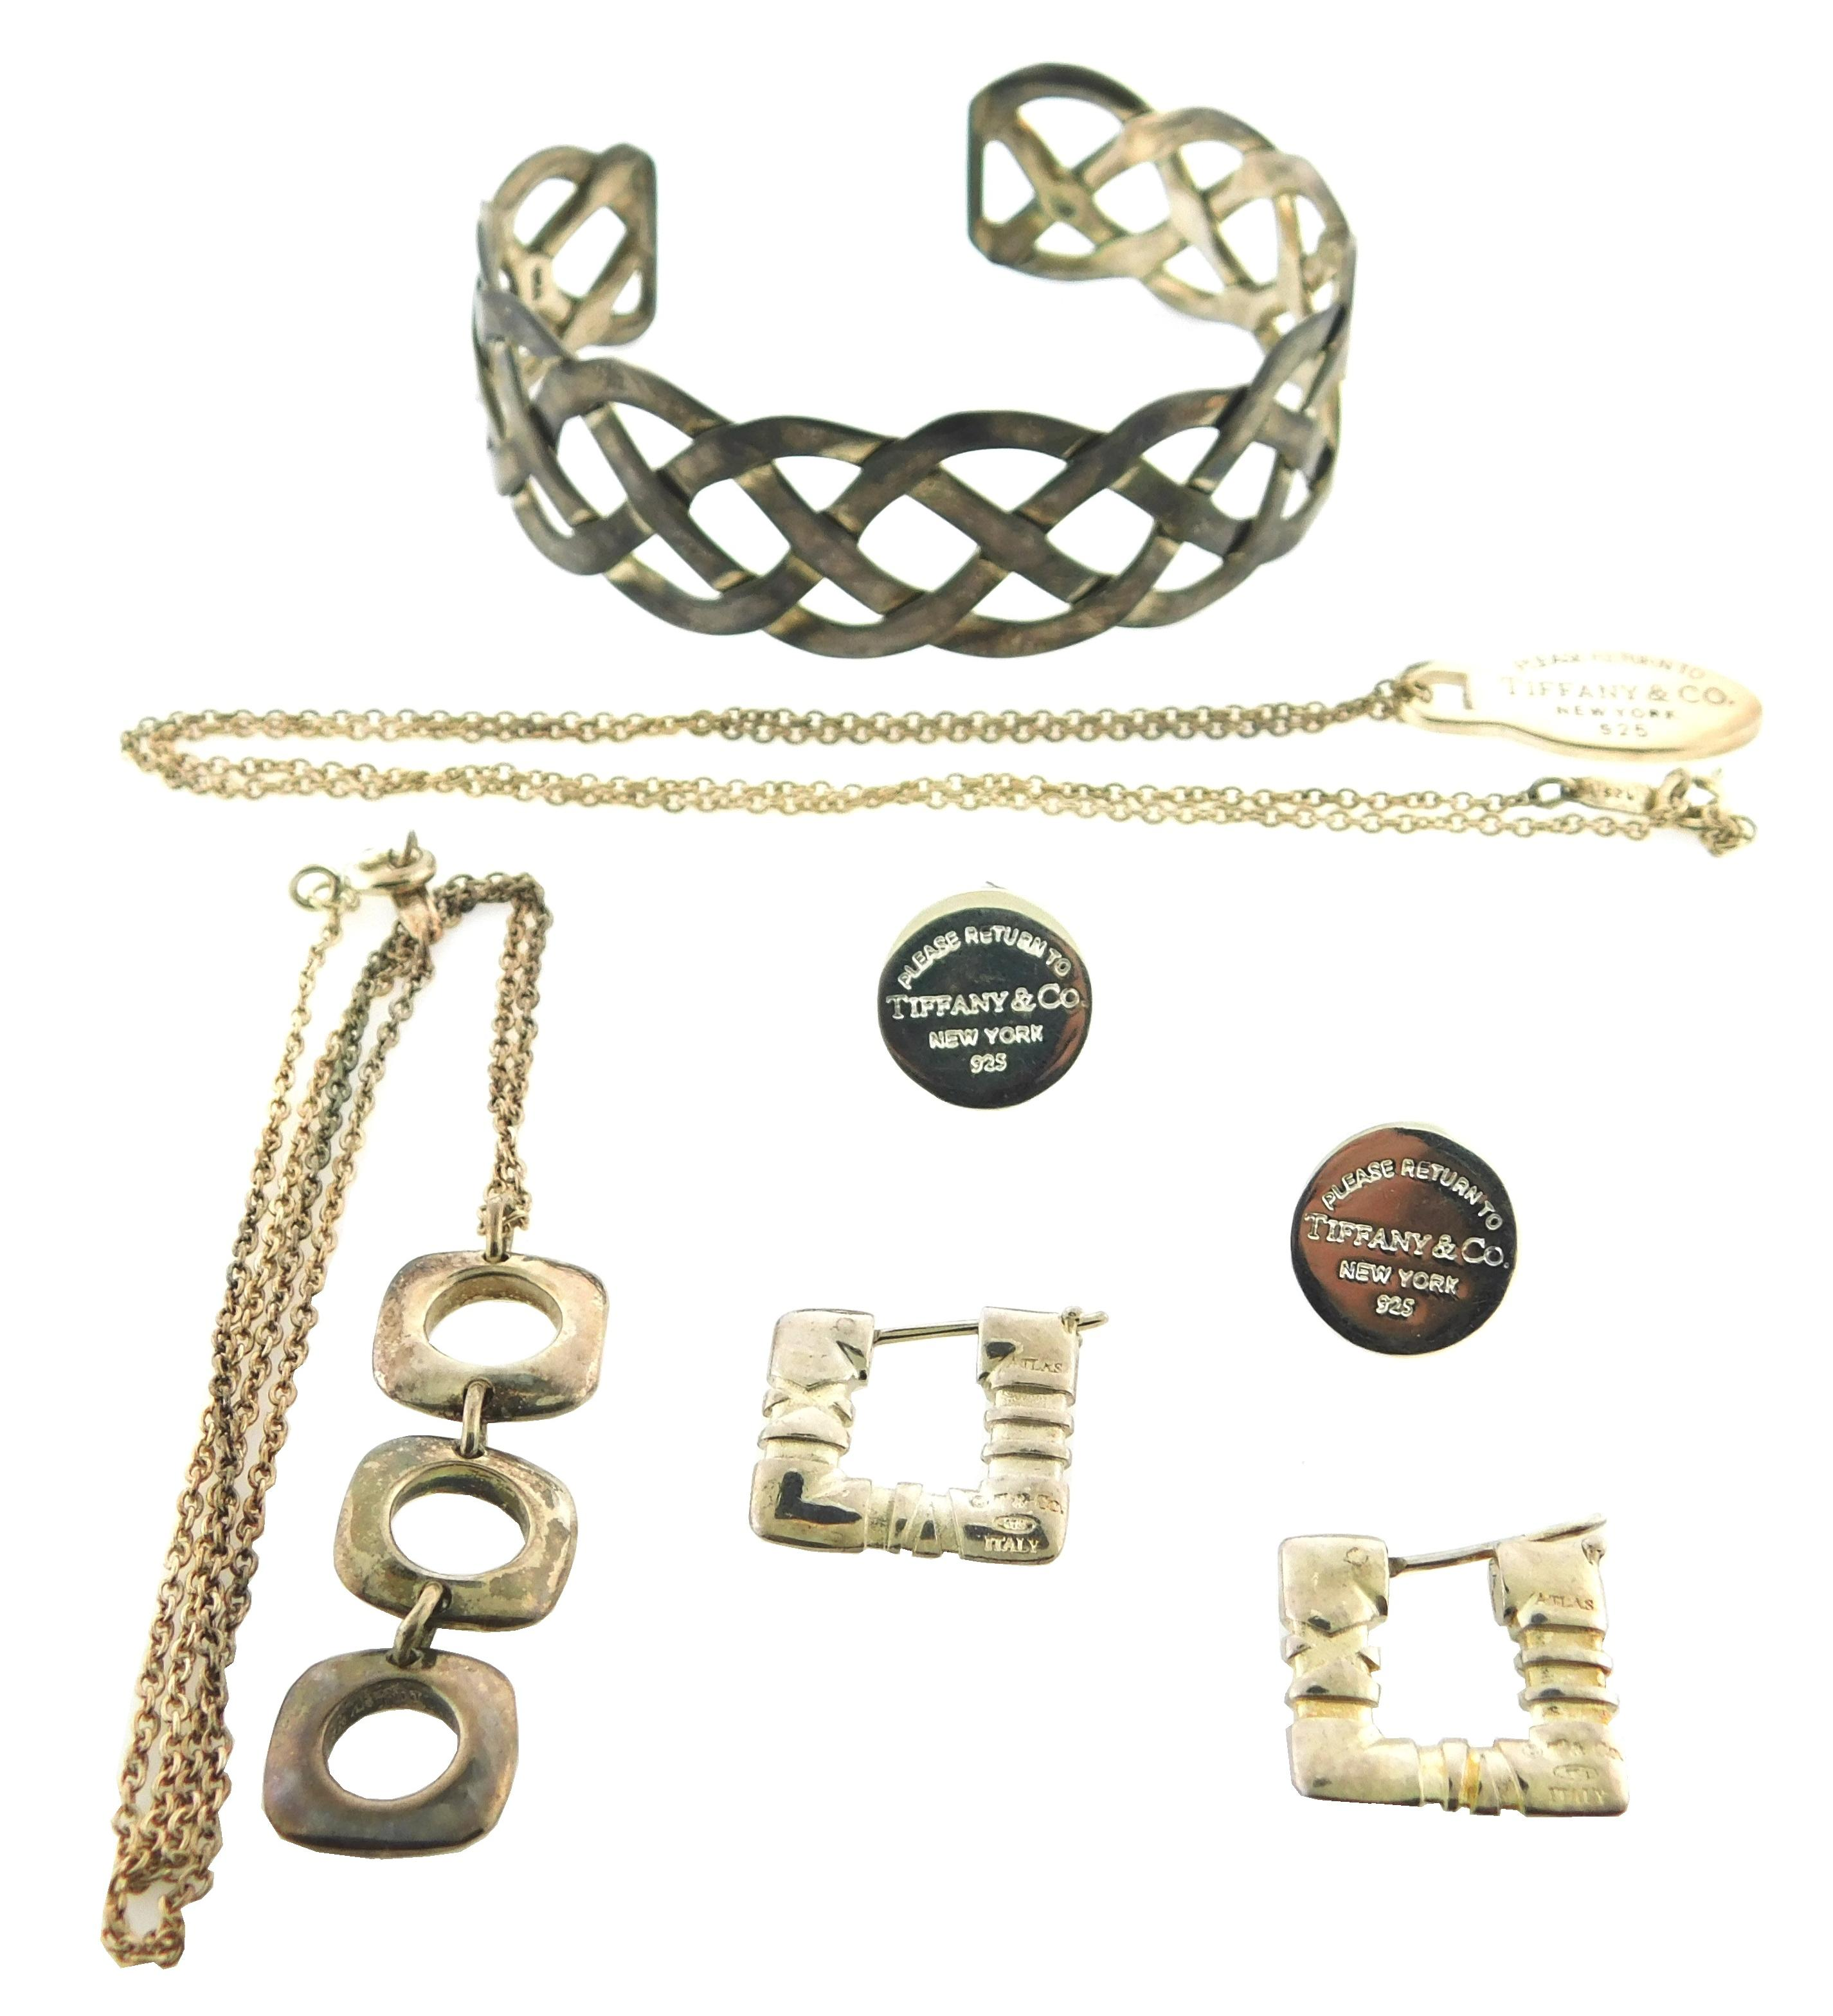 SILVER: Four sterling Tiffany & Co. jewelry pieces and one pierced sterling cuff, all pieces marked, details include: two Tiffany pe...